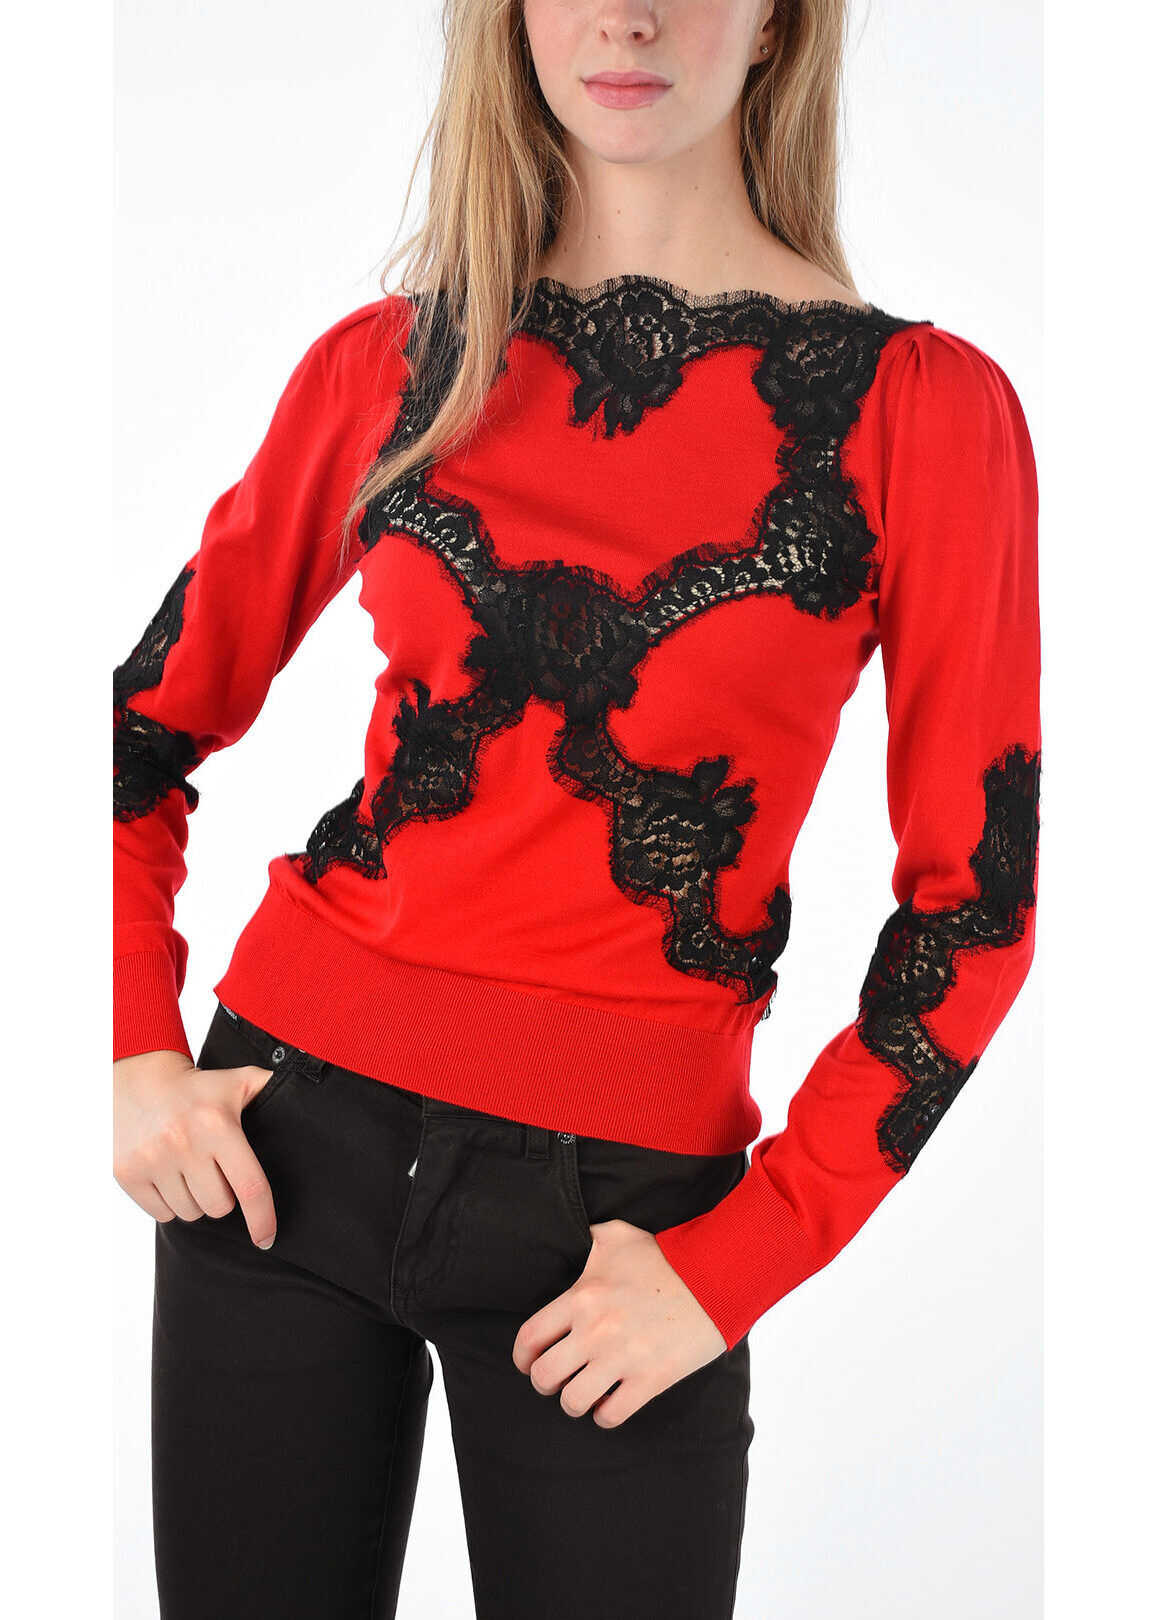 Dolce & Gabbana Light Laced Details Sweater RED